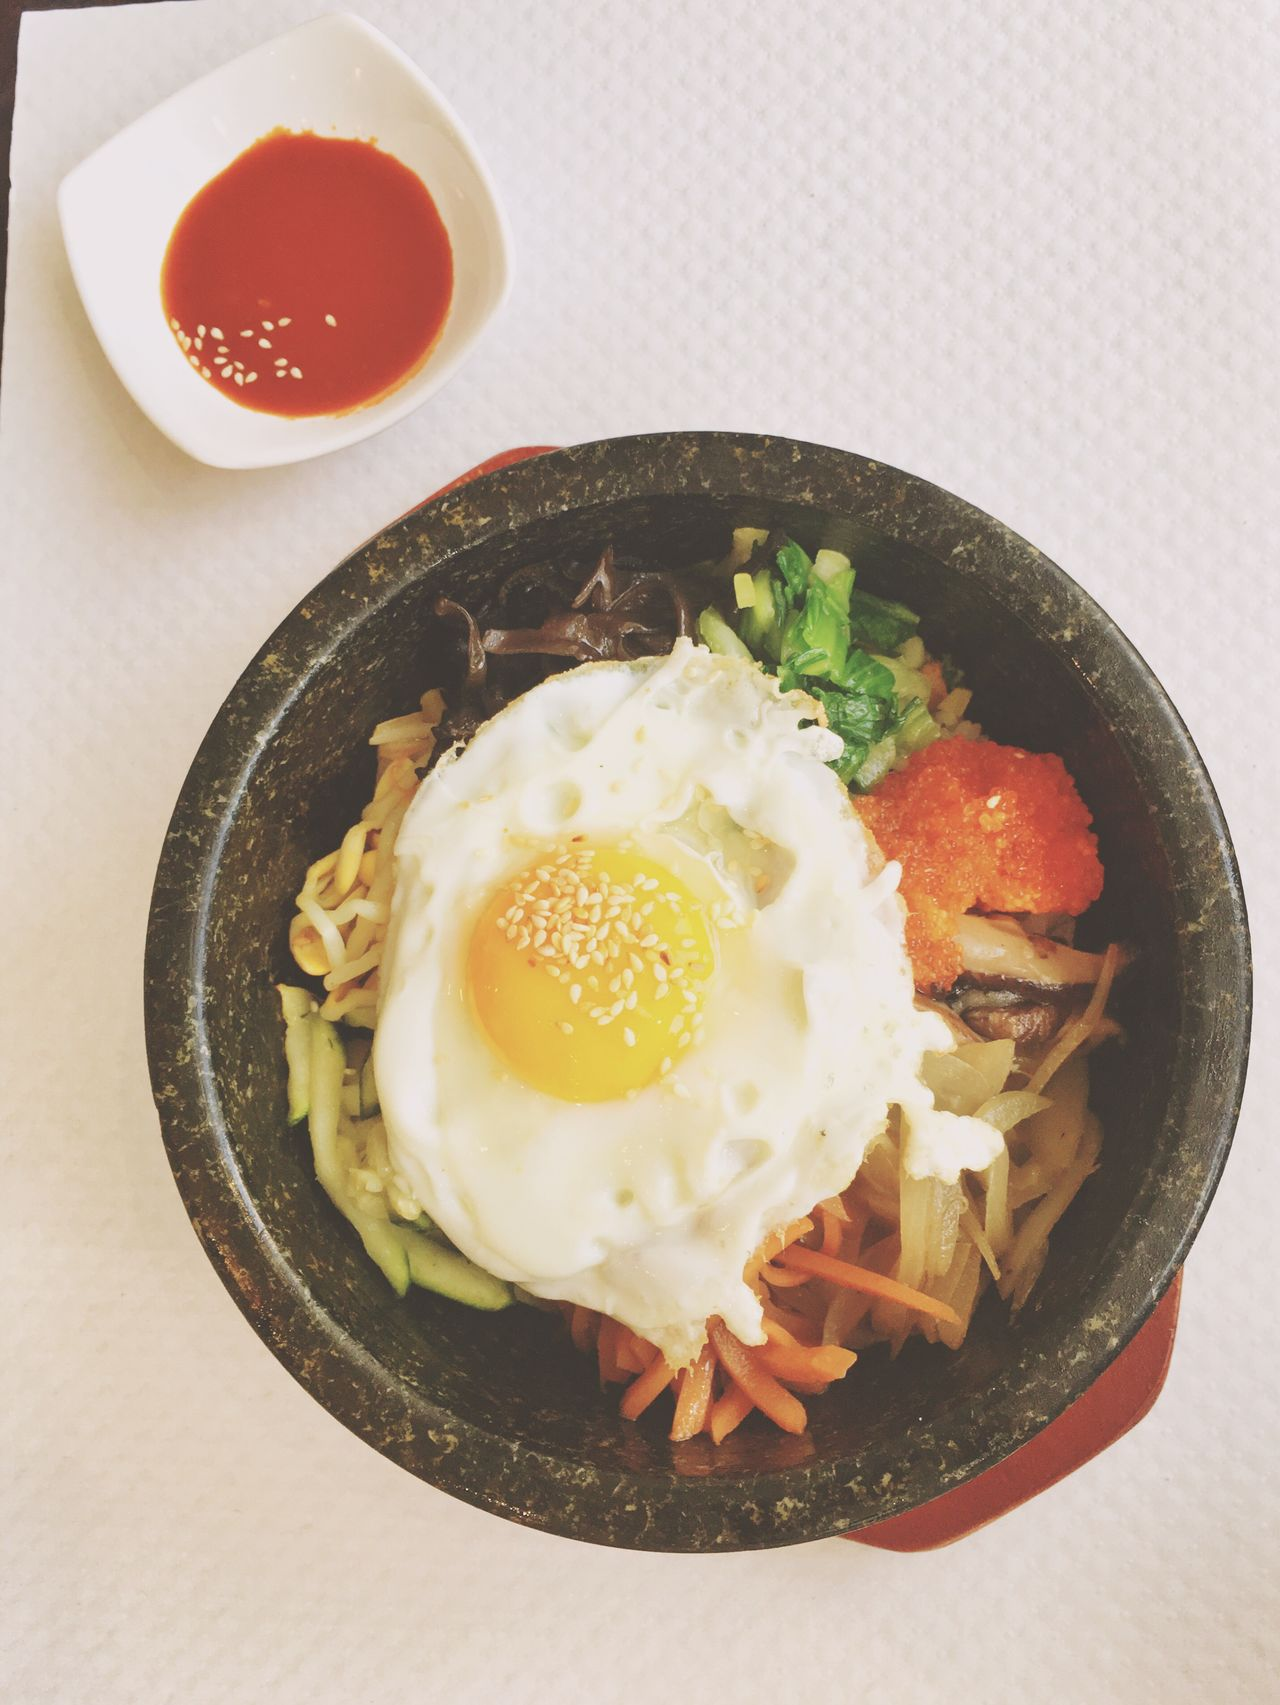 Food Coreanfood Onthetable Bibimbap😋 Enjoying A Meal Yummy Foodphotography Street Food Worldwide Delicious Lunch Time! Lunch Eating Out Korean Food Korea What's For Dinner?